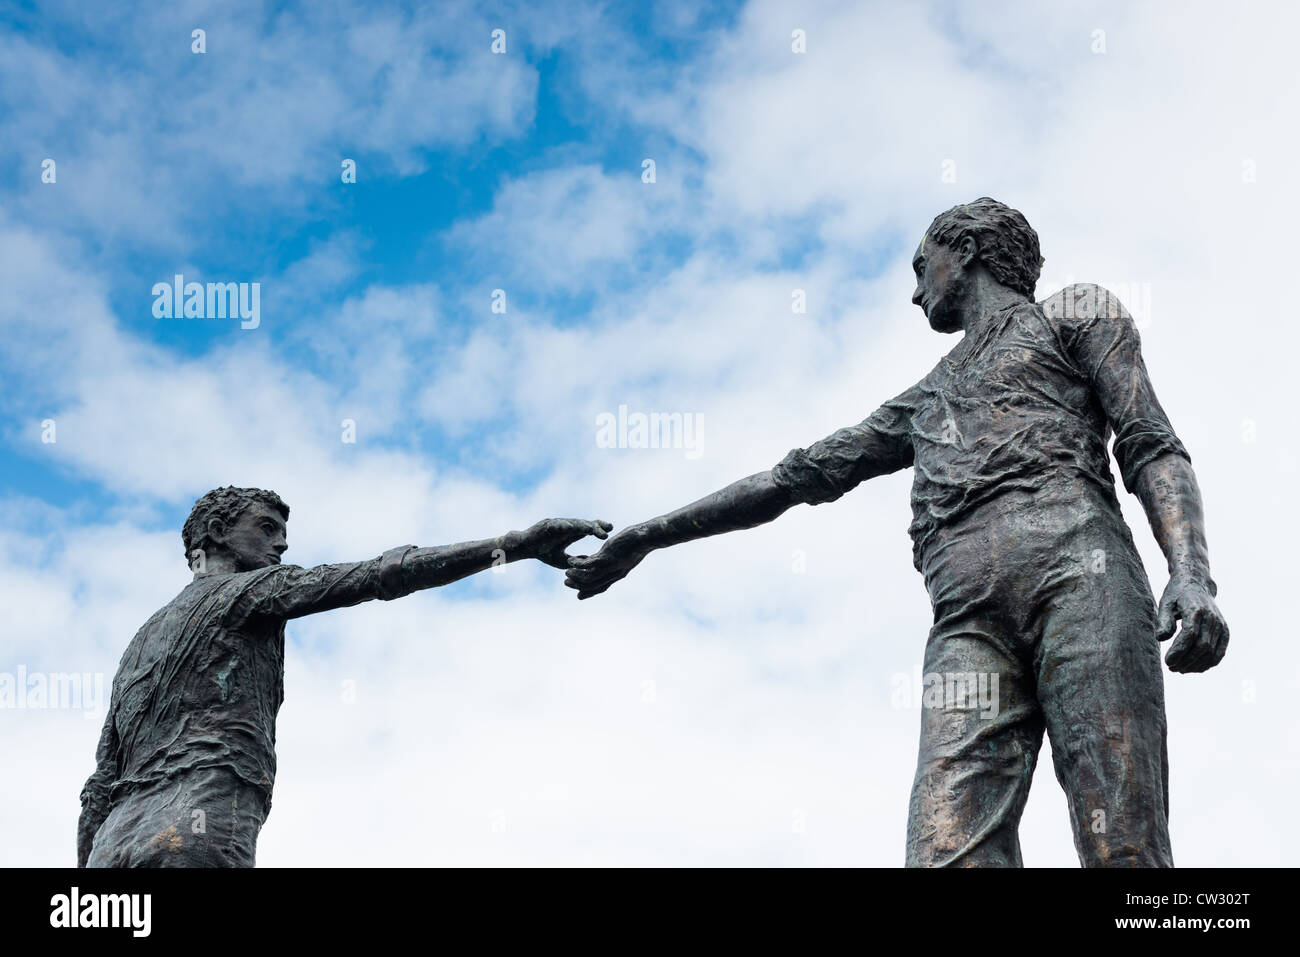 Hands Across The Divide sculpture, Derry, Northern Ireland. - Stock Image